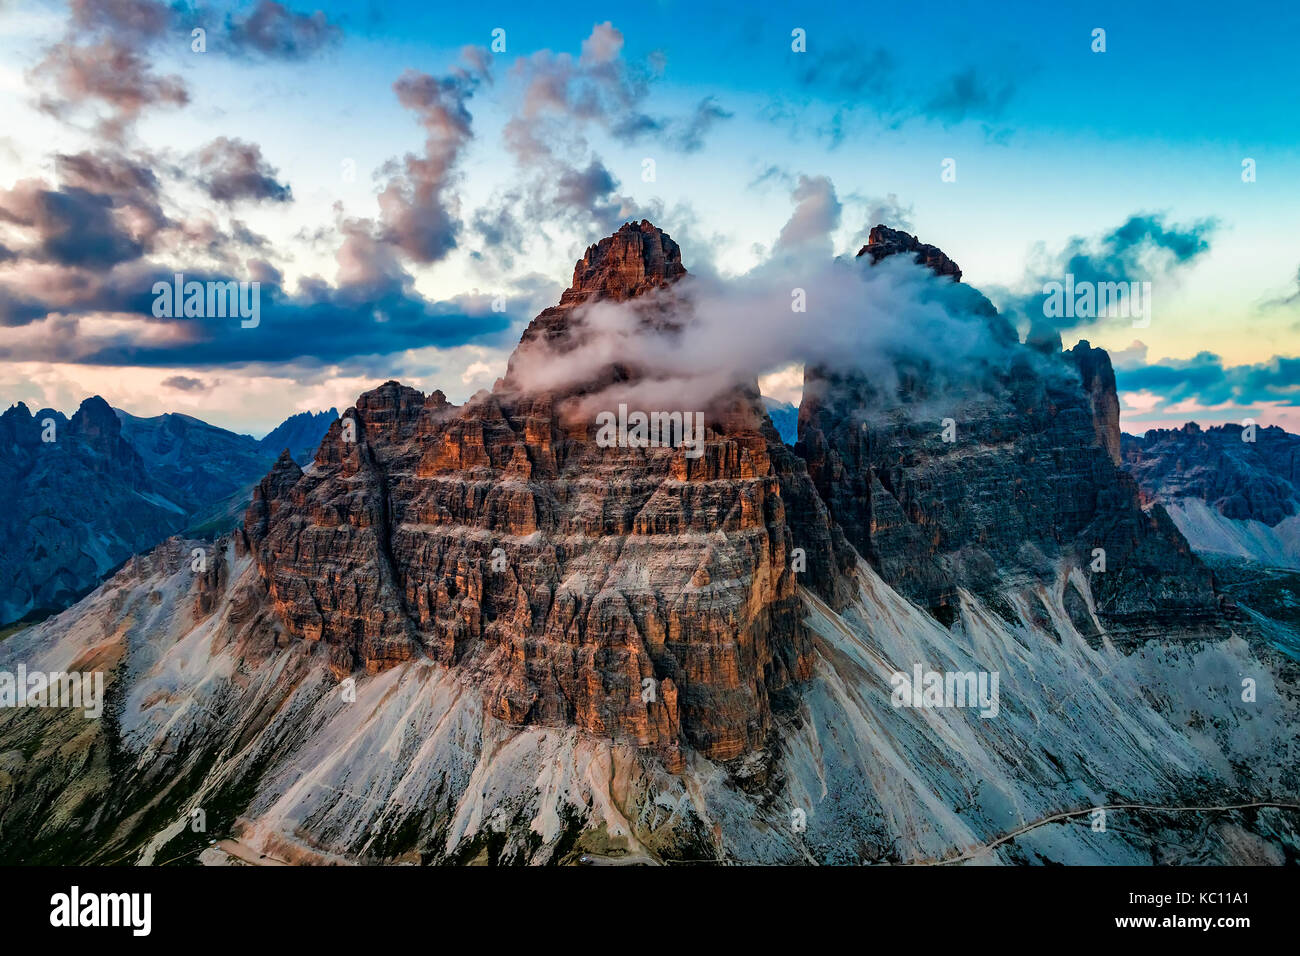 National Nature Park Tre Cime In the Dolomites Alps. Beautiful nature of Italy. - Stock Image